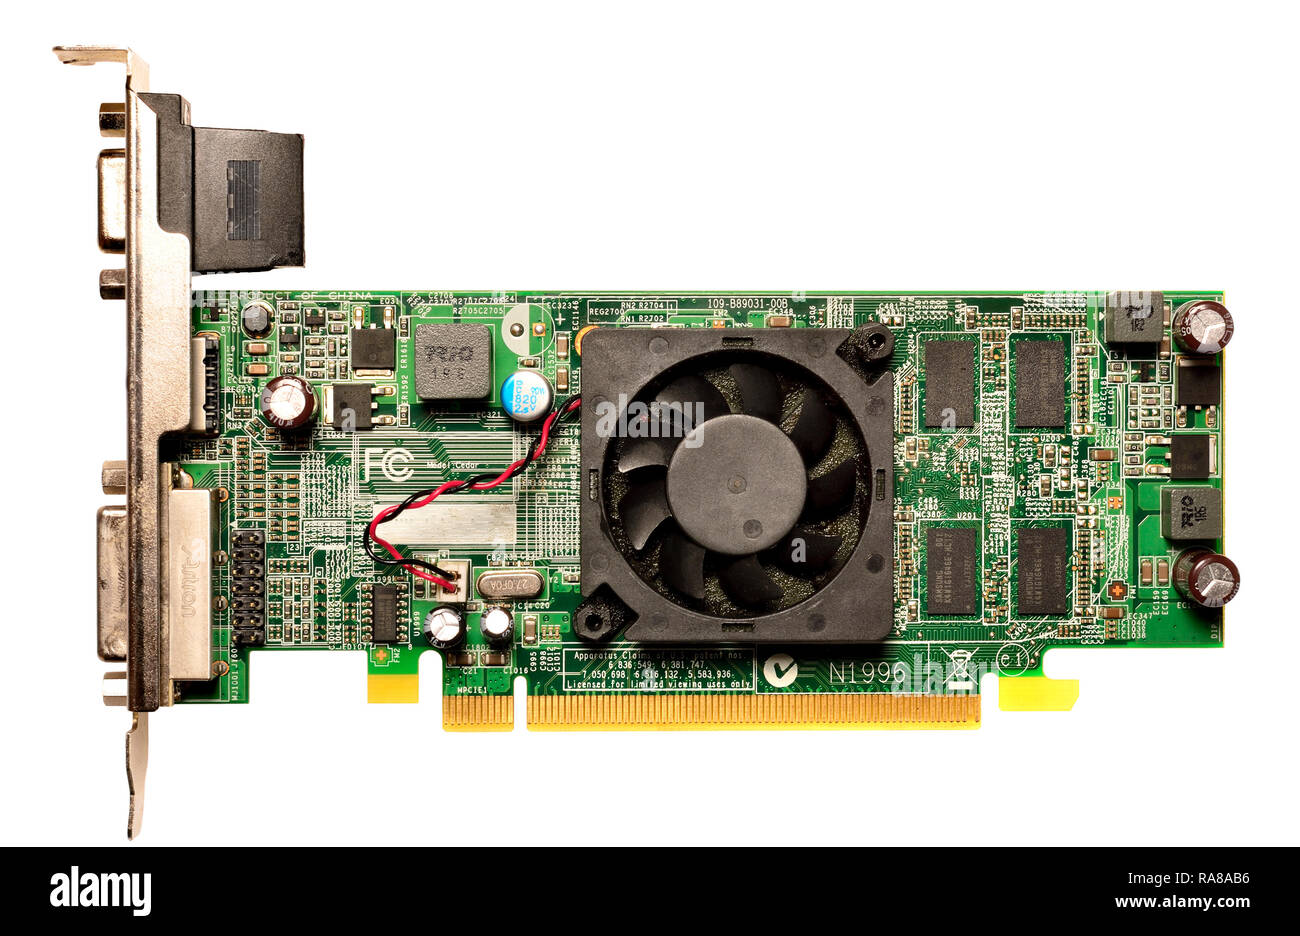 Computer graphics card - Stock Image